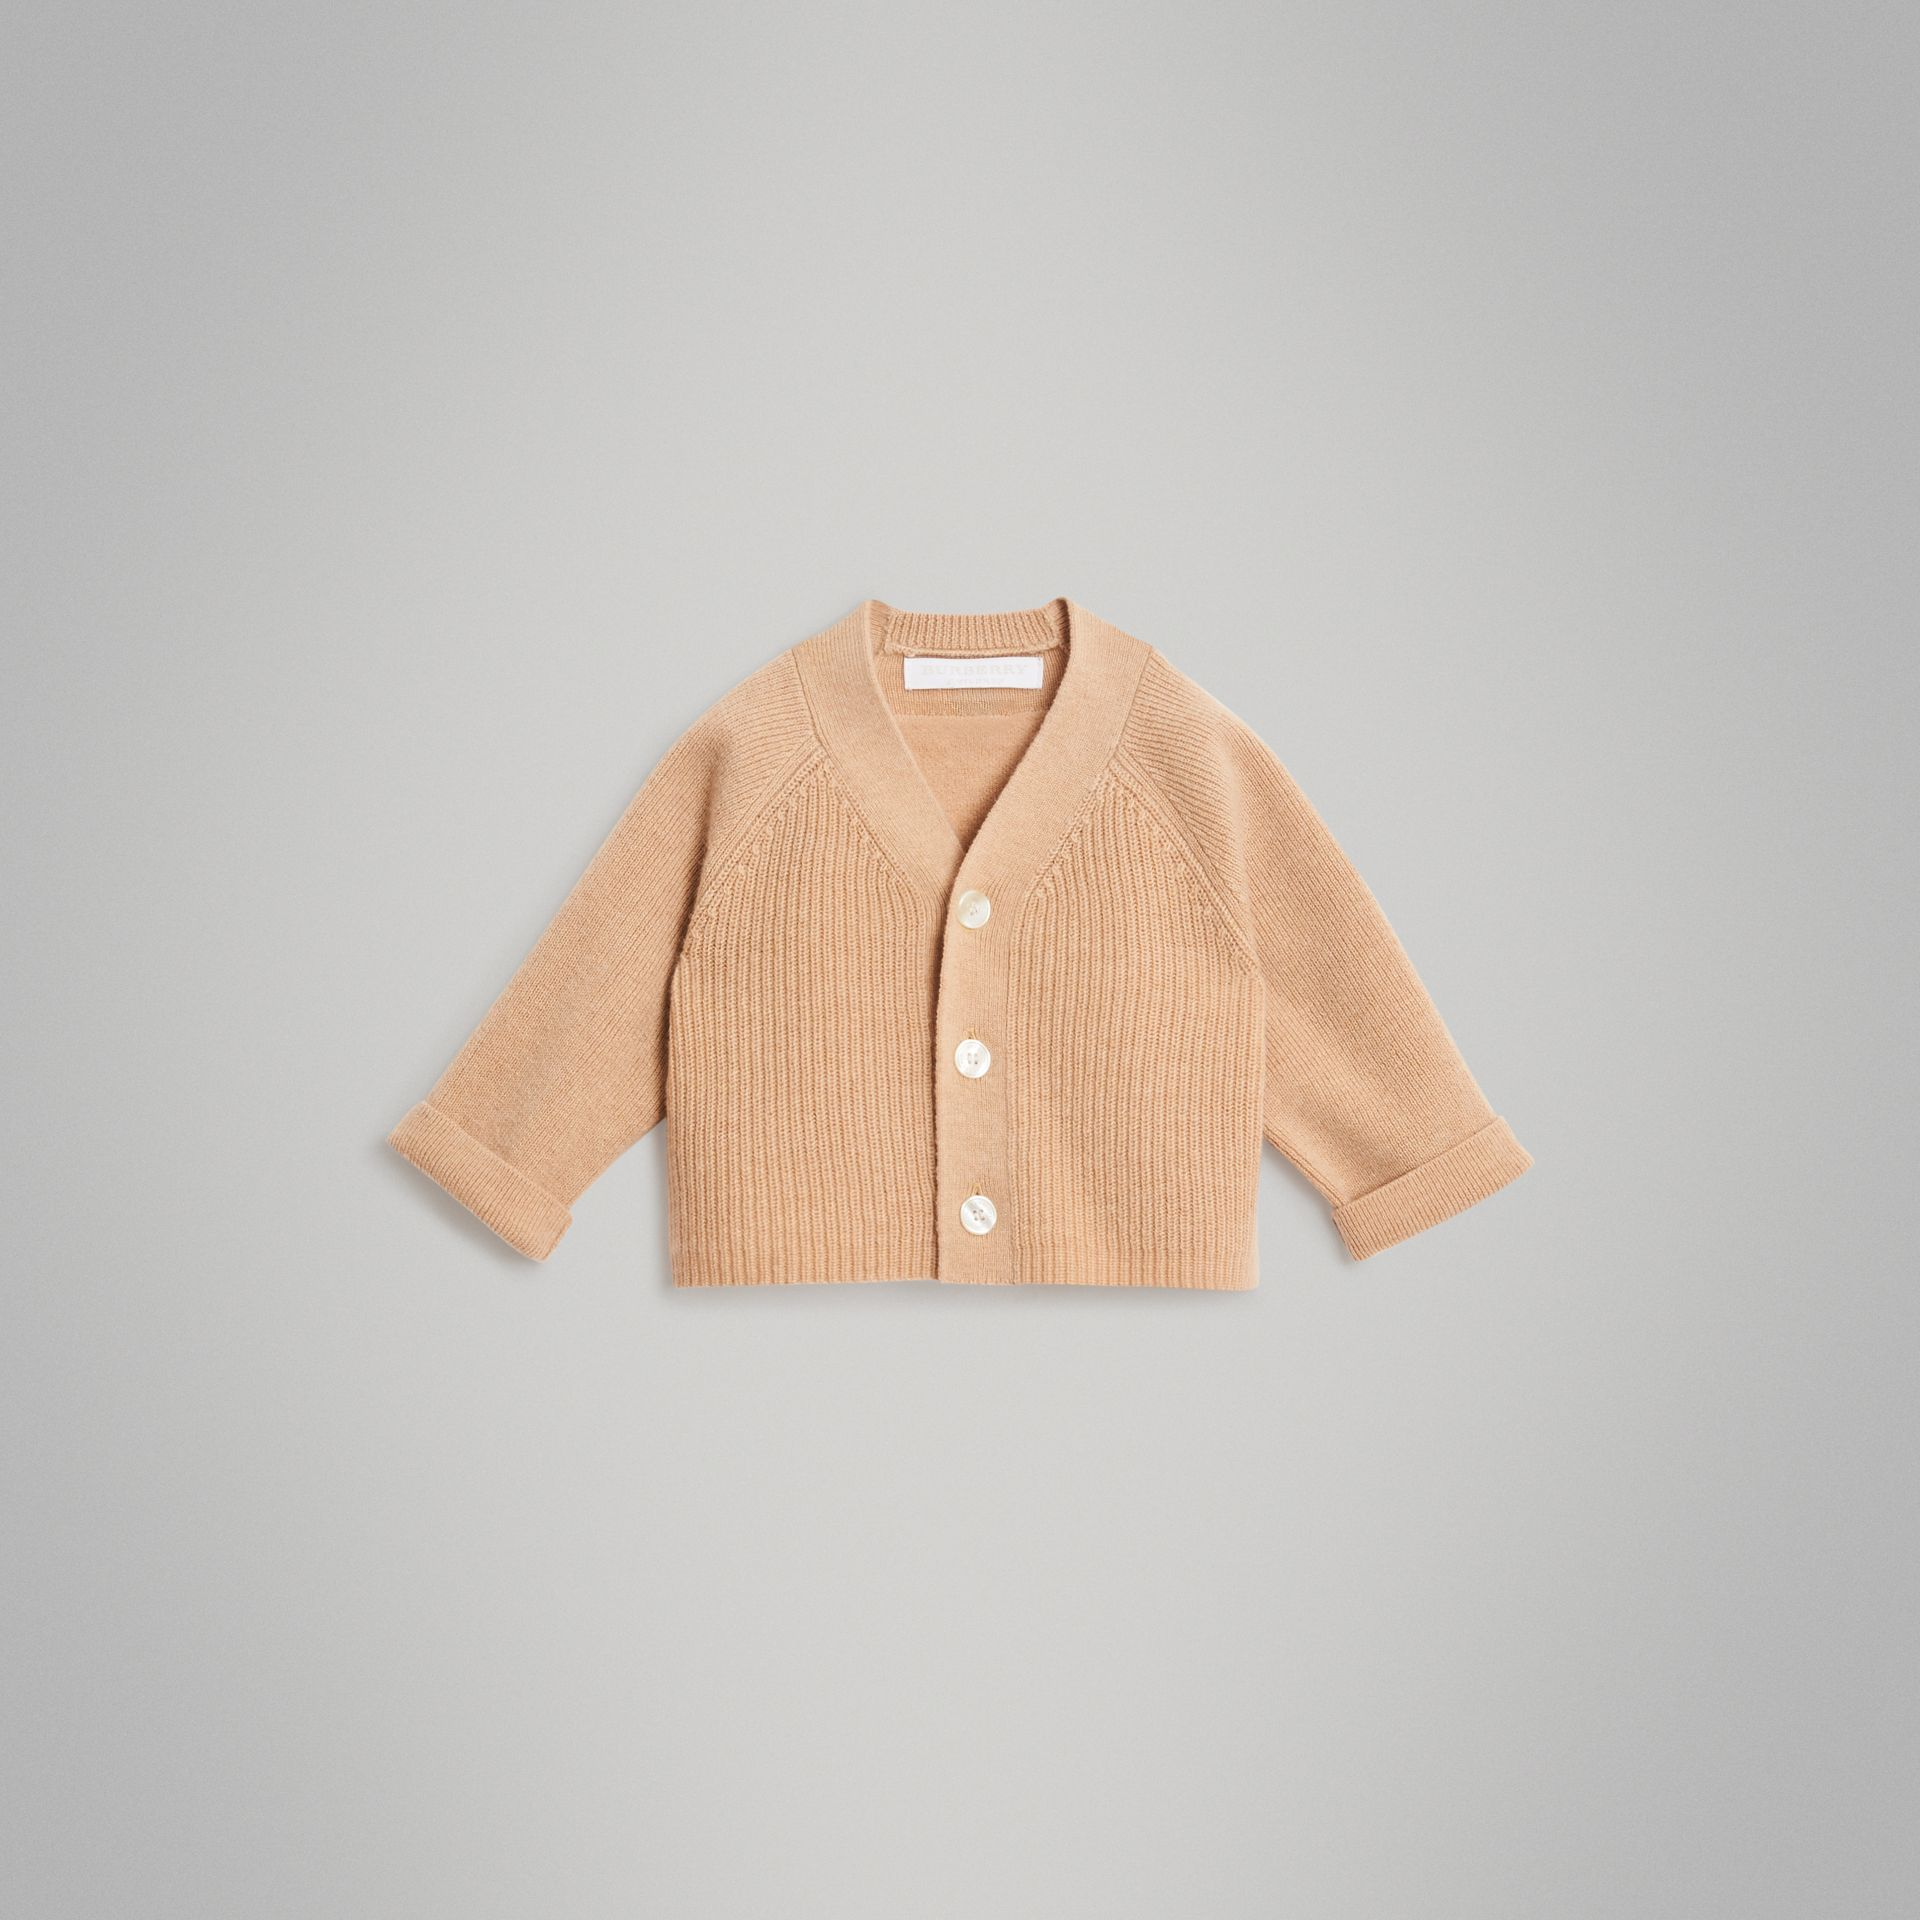 Cashmere Cotton Knit Cardigan in Peach - Children | Burberry Hong Kong - gallery image 0